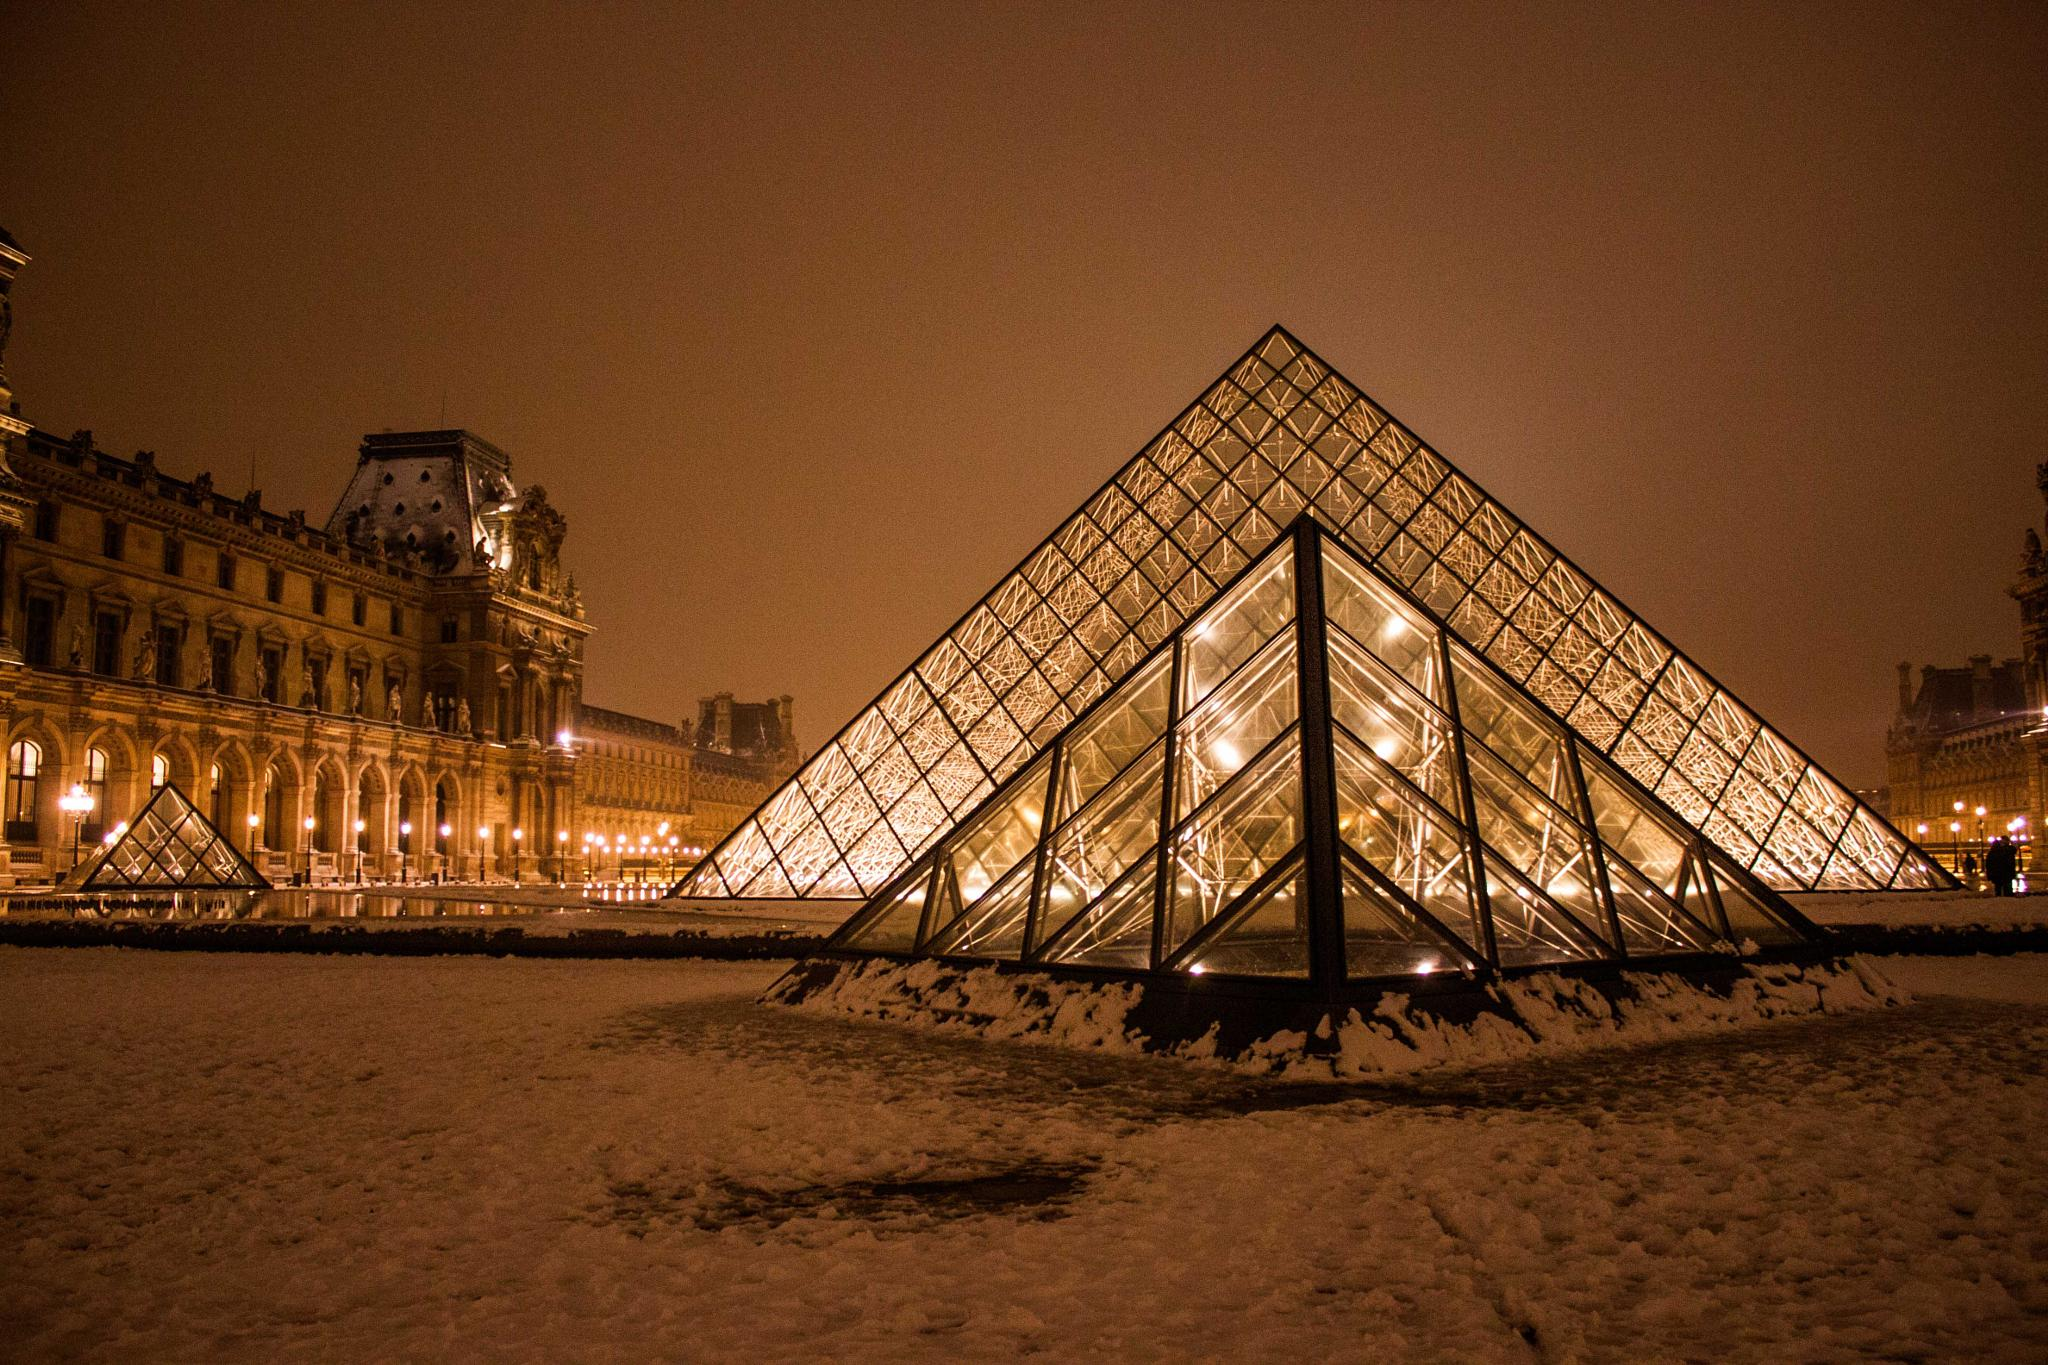 Louvre at night by hrisi_ast